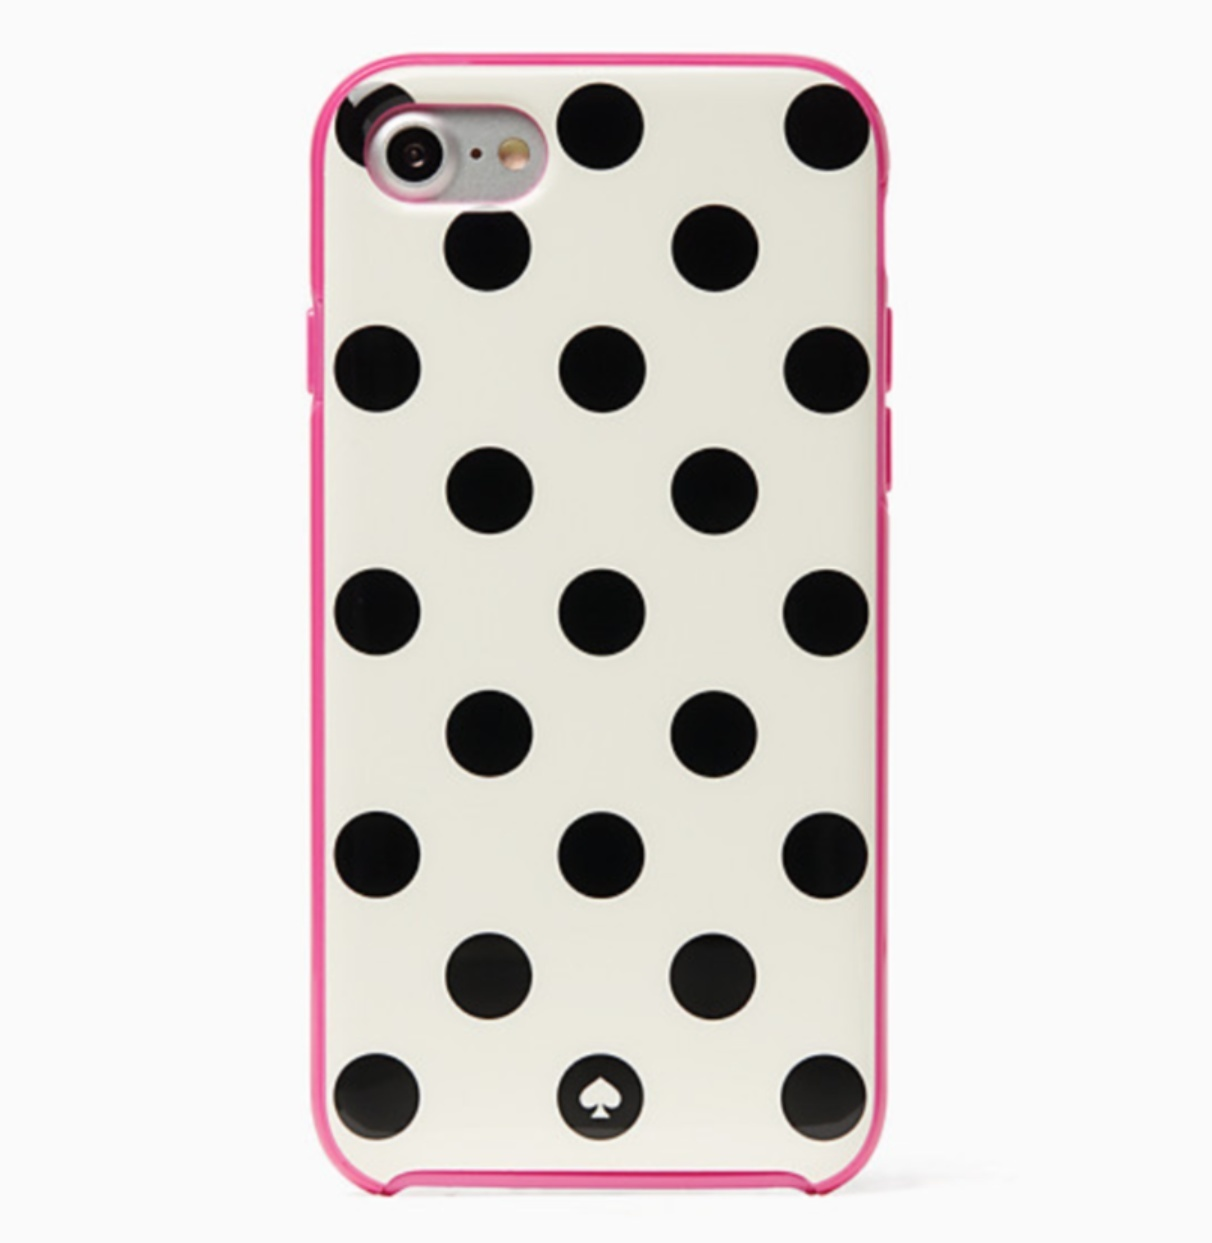 kate spade new york iphone cases le pavillion - 7